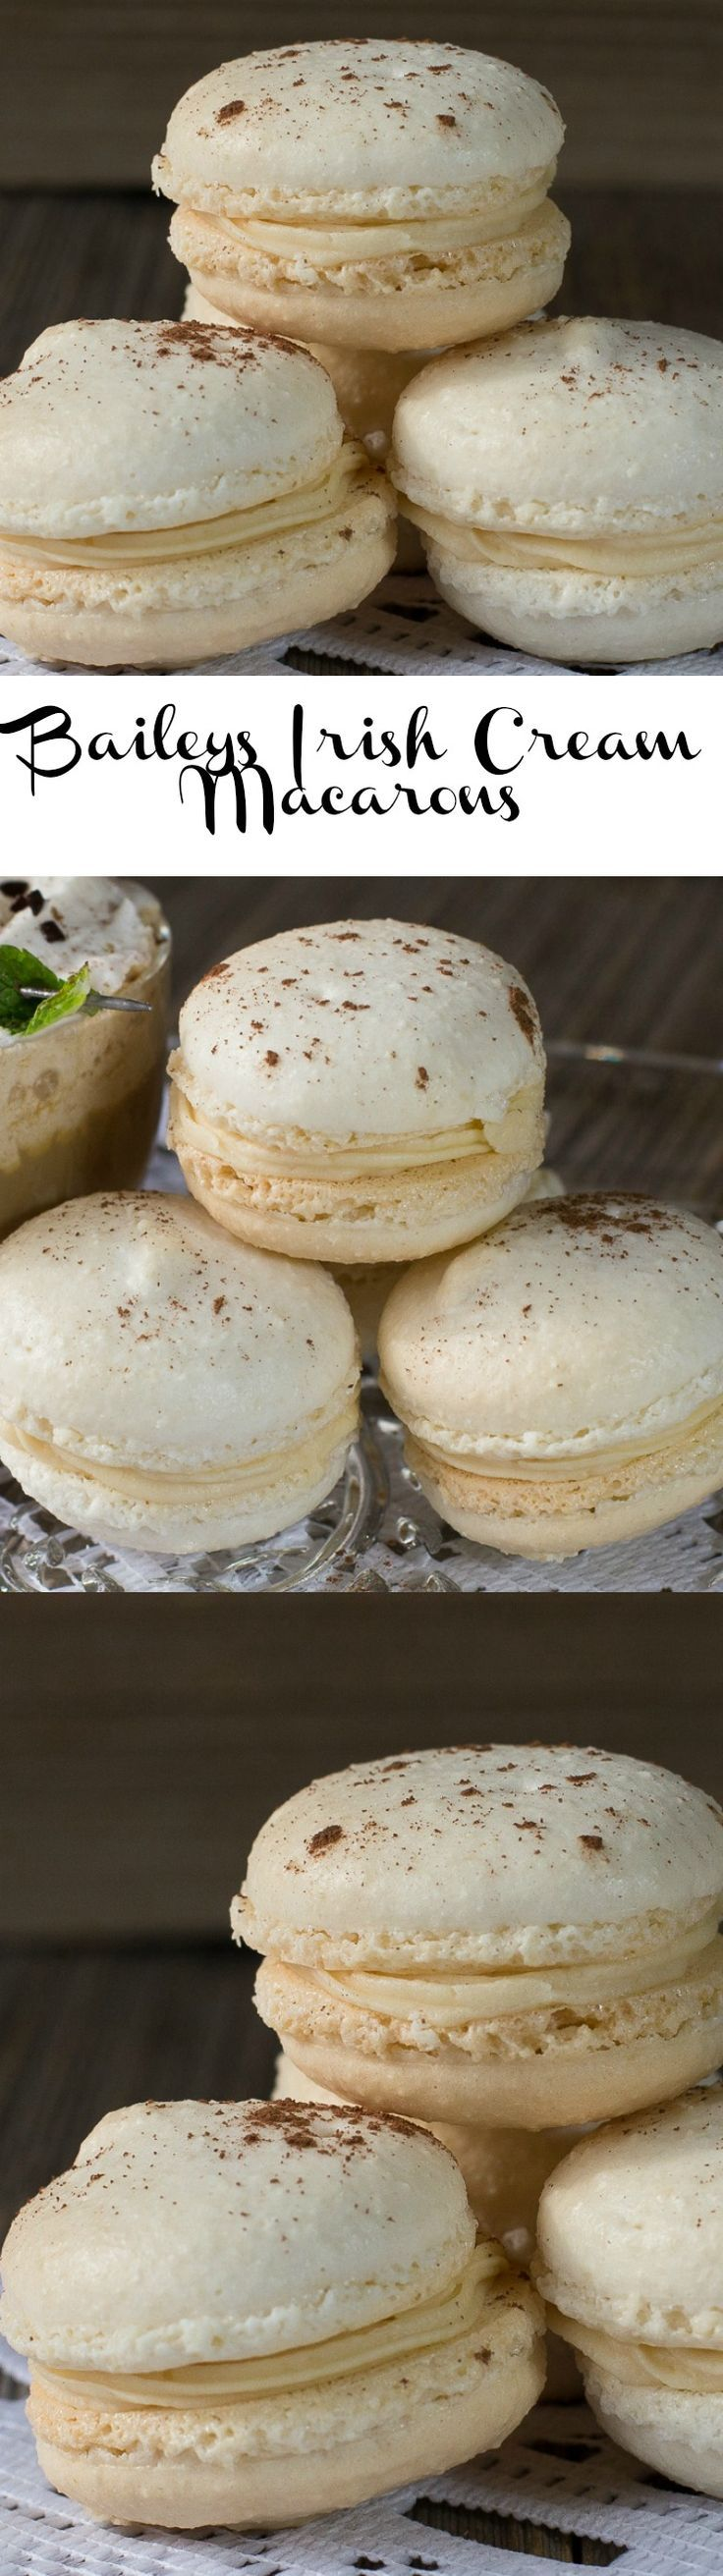 95 best Macarons images on Pinterest